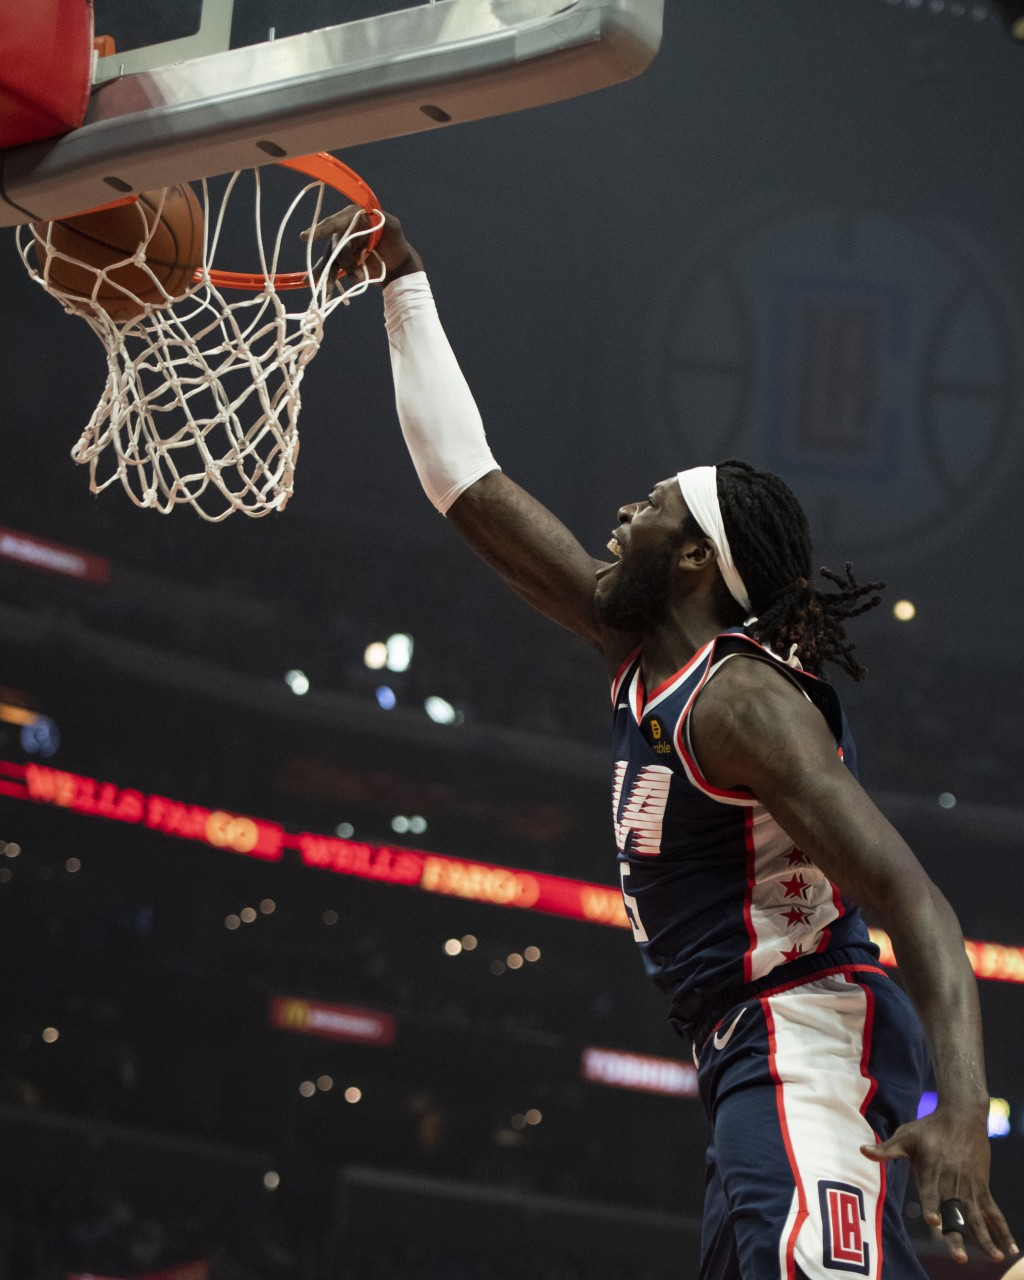 Los Angeles Clippers forward Montrezl Harrell slams a dunk during the first half of an NBA basketball game against the Denver Nuggets in Los Angeles S